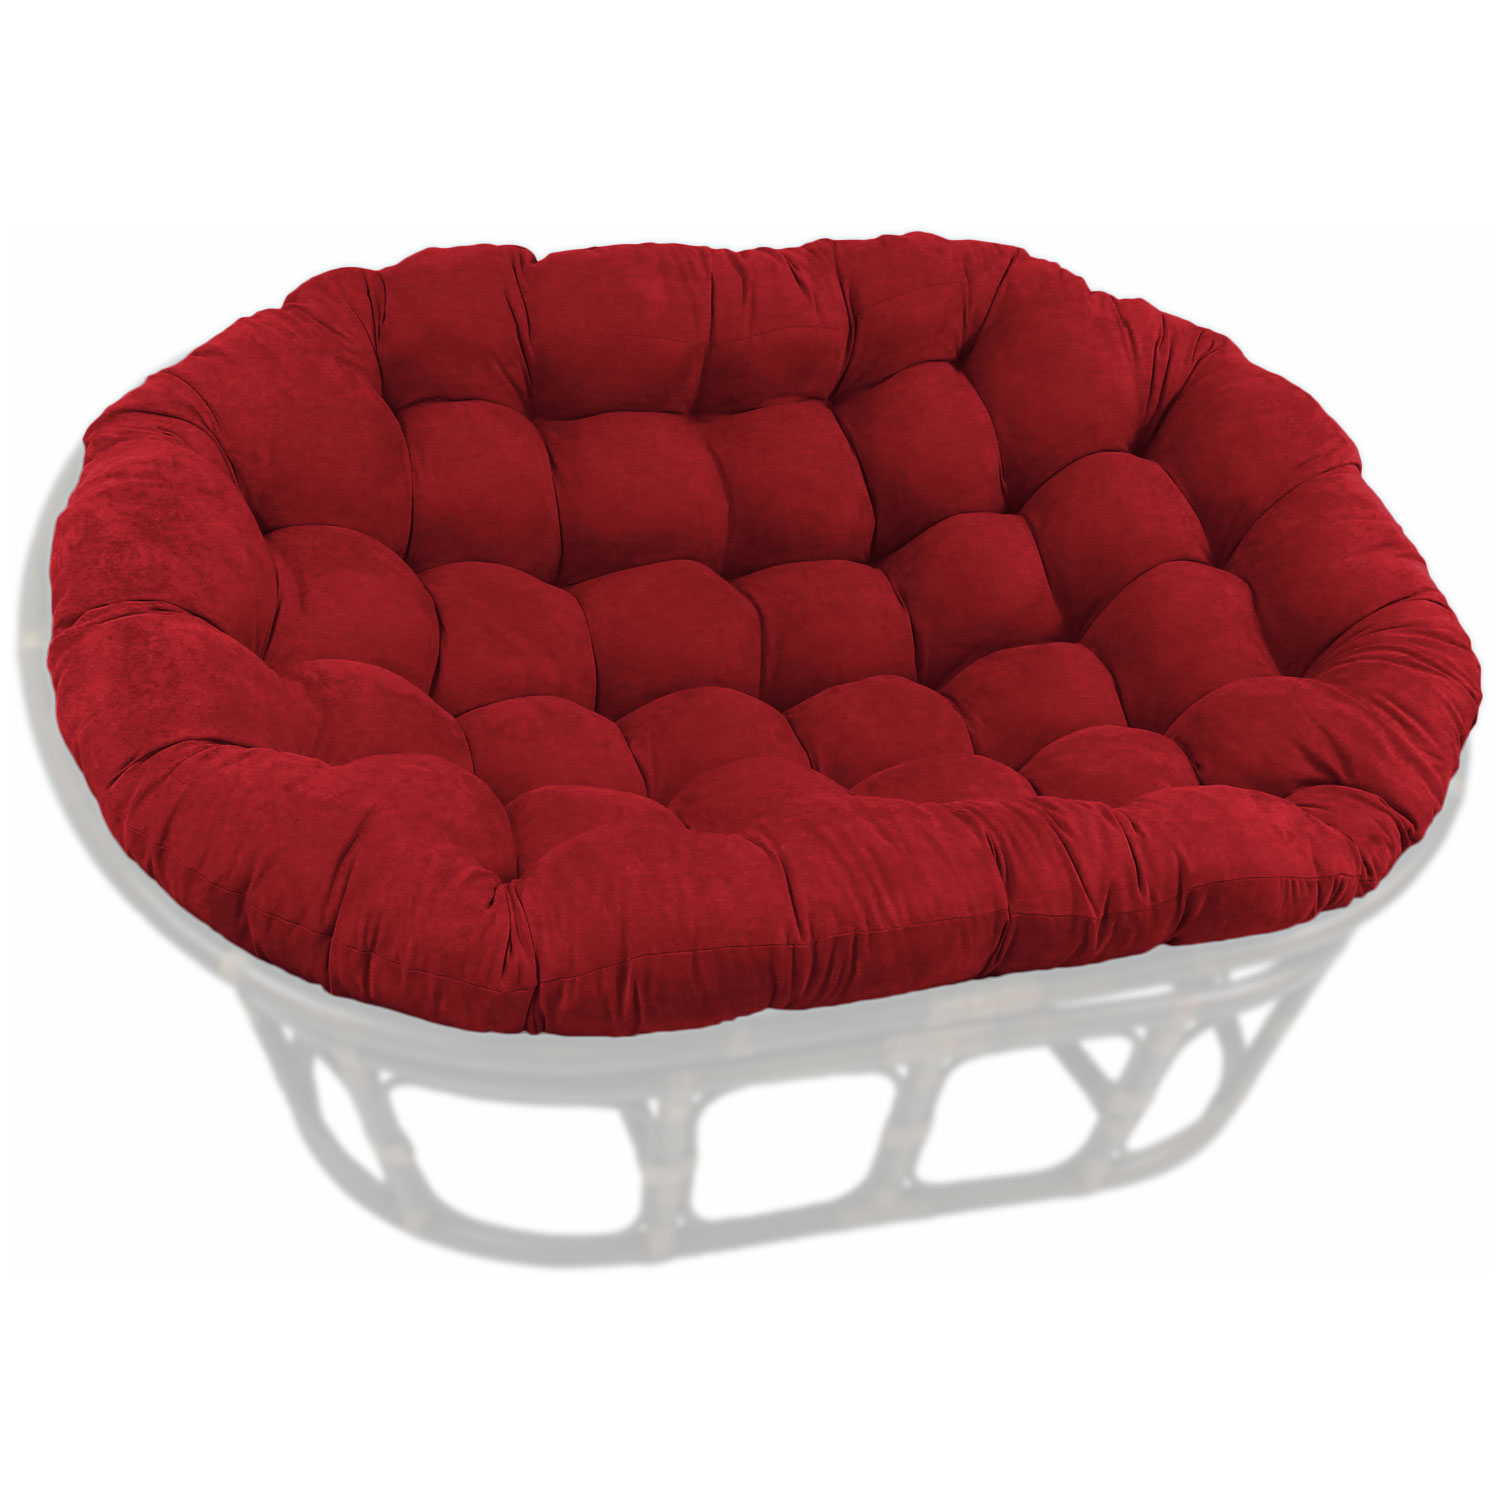 78 X 58 Oversized Double Papasan Cushion Tufted Microsuede Blz